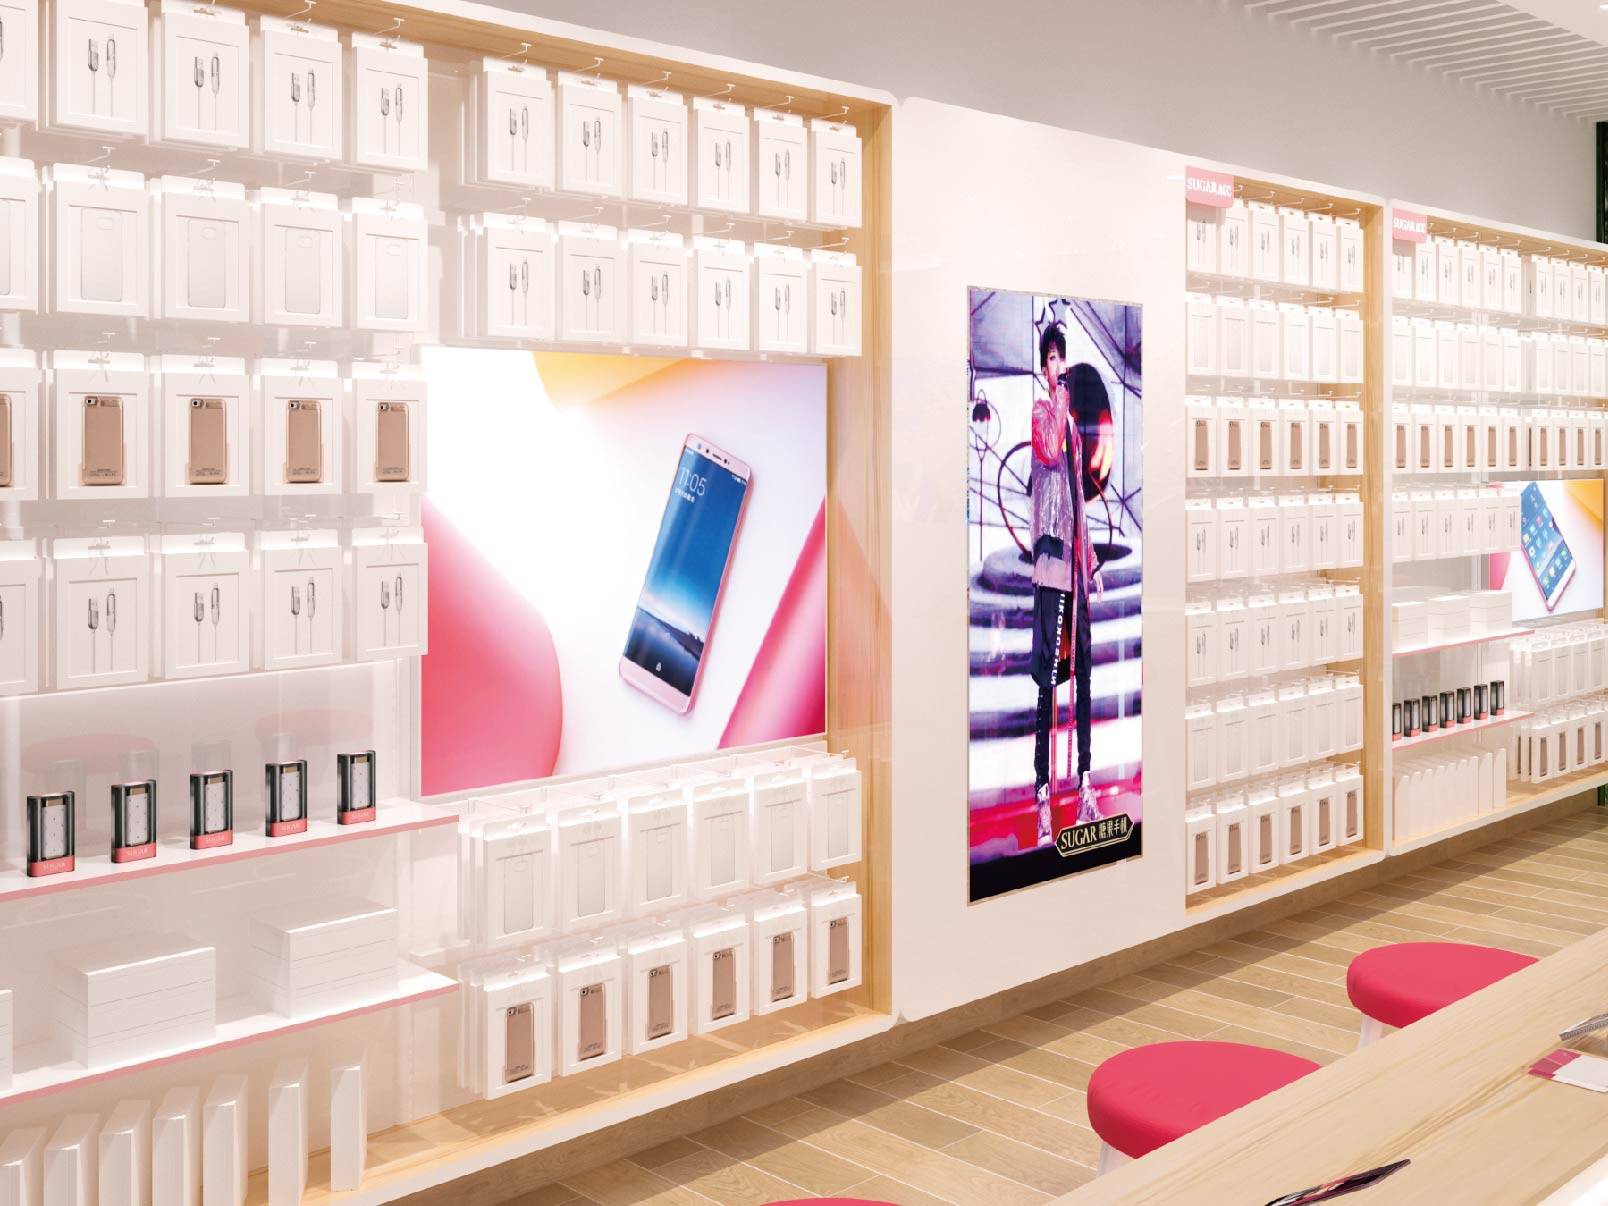 SUGAR Mobile Phone Experience Store | Retail Store Design